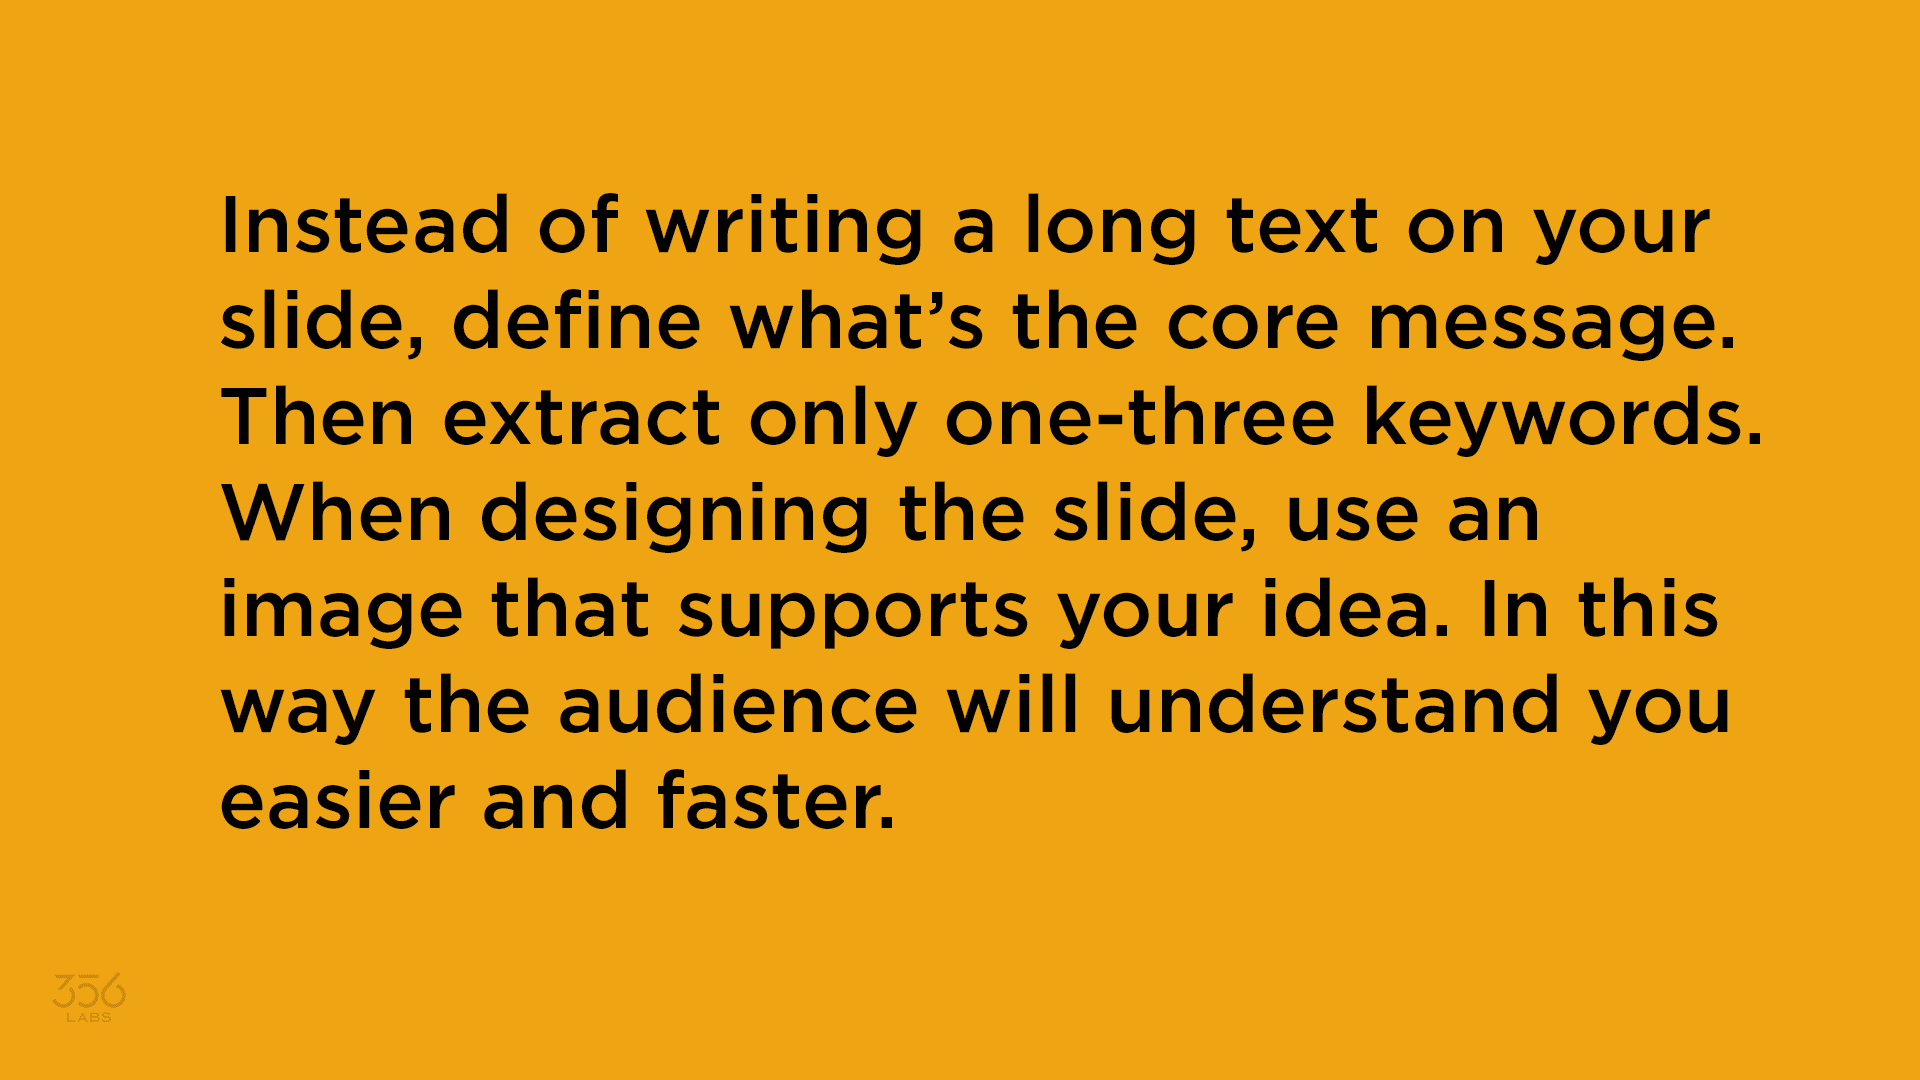 An image describing the negatives of long text on slides